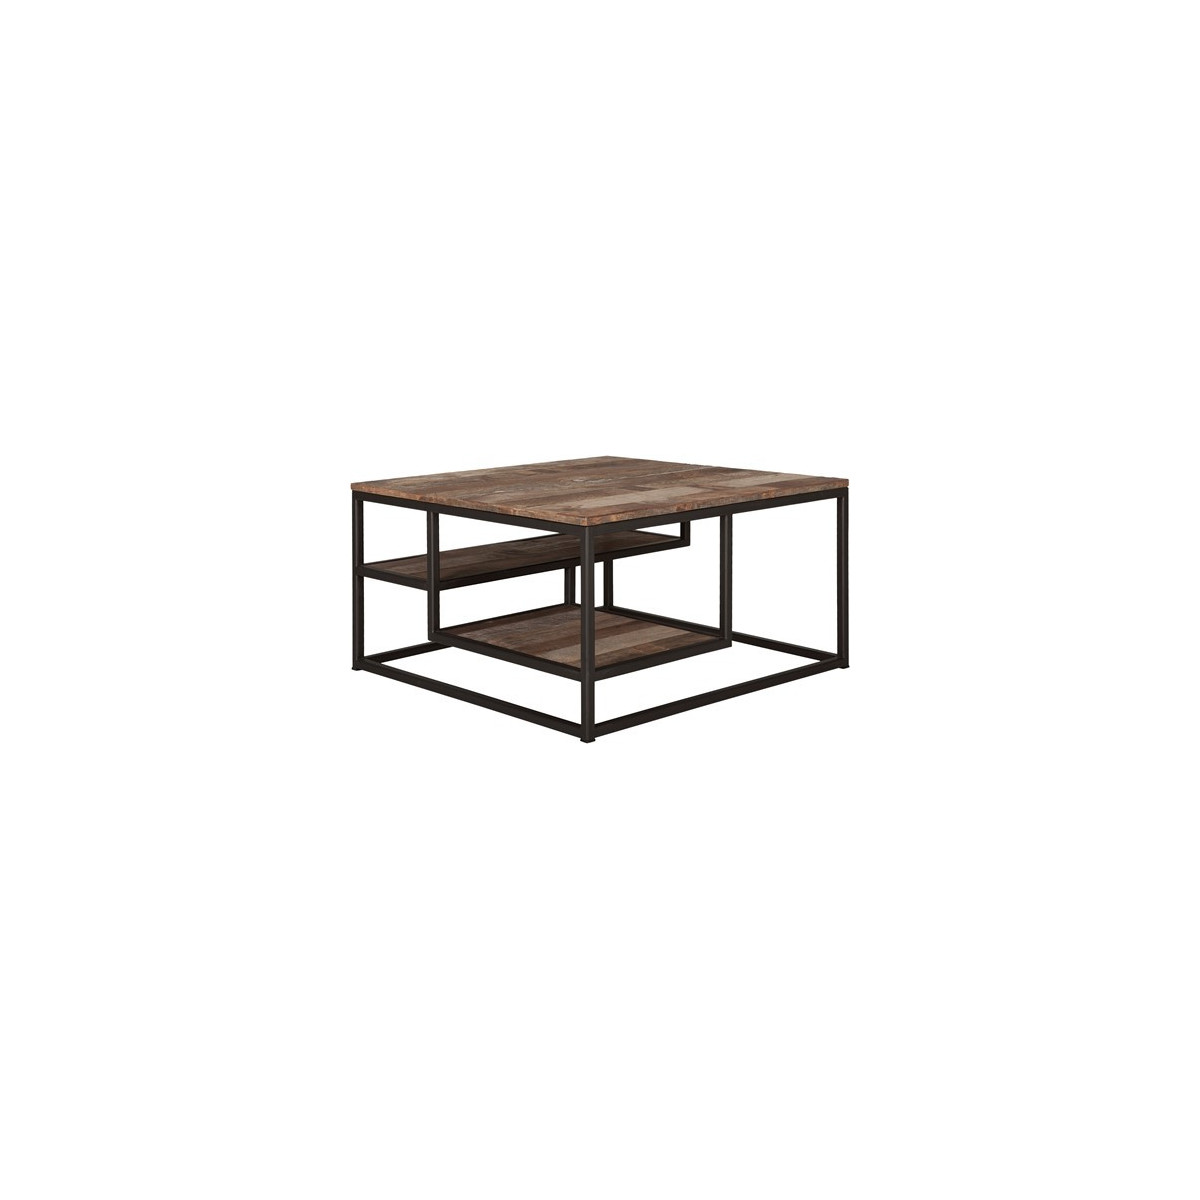 table basse tuareg en teck recycl 3 plateaux avec pi tement en m tal noir de la marque d bodhi. Black Bedroom Furniture Sets. Home Design Ideas